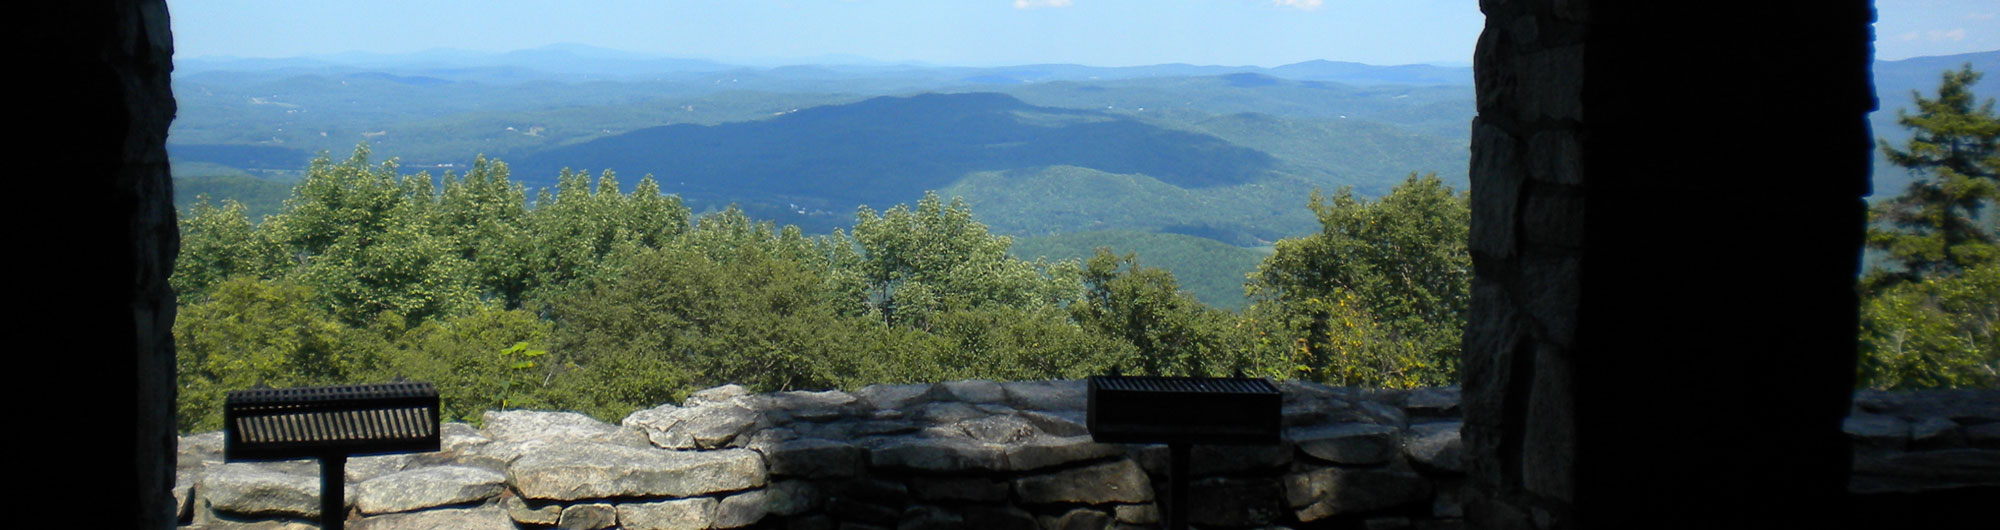 Mt. Ascutney State Park 1